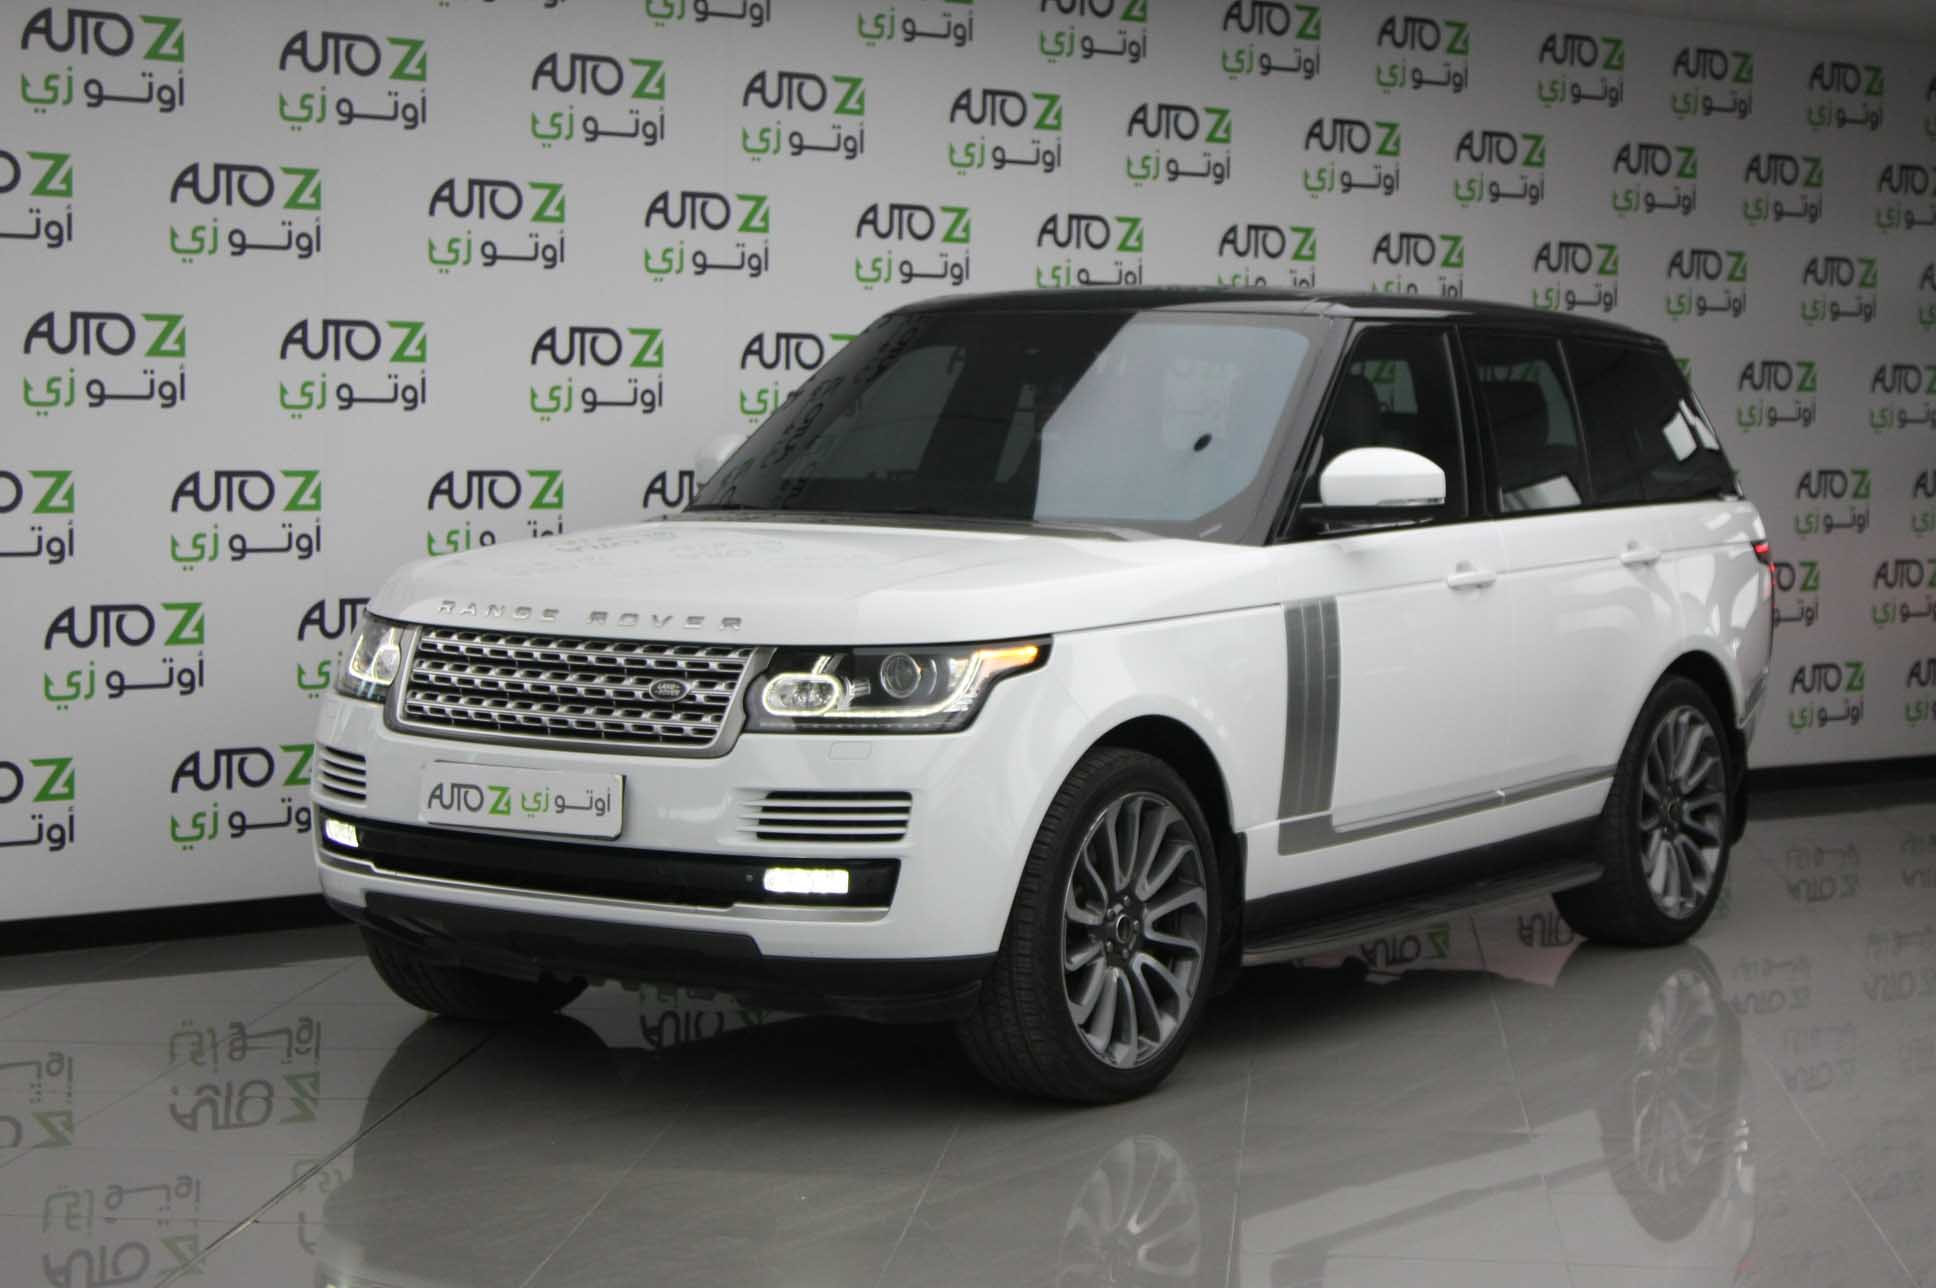 2014 Land Rover Range Rover Vogue Super Charged